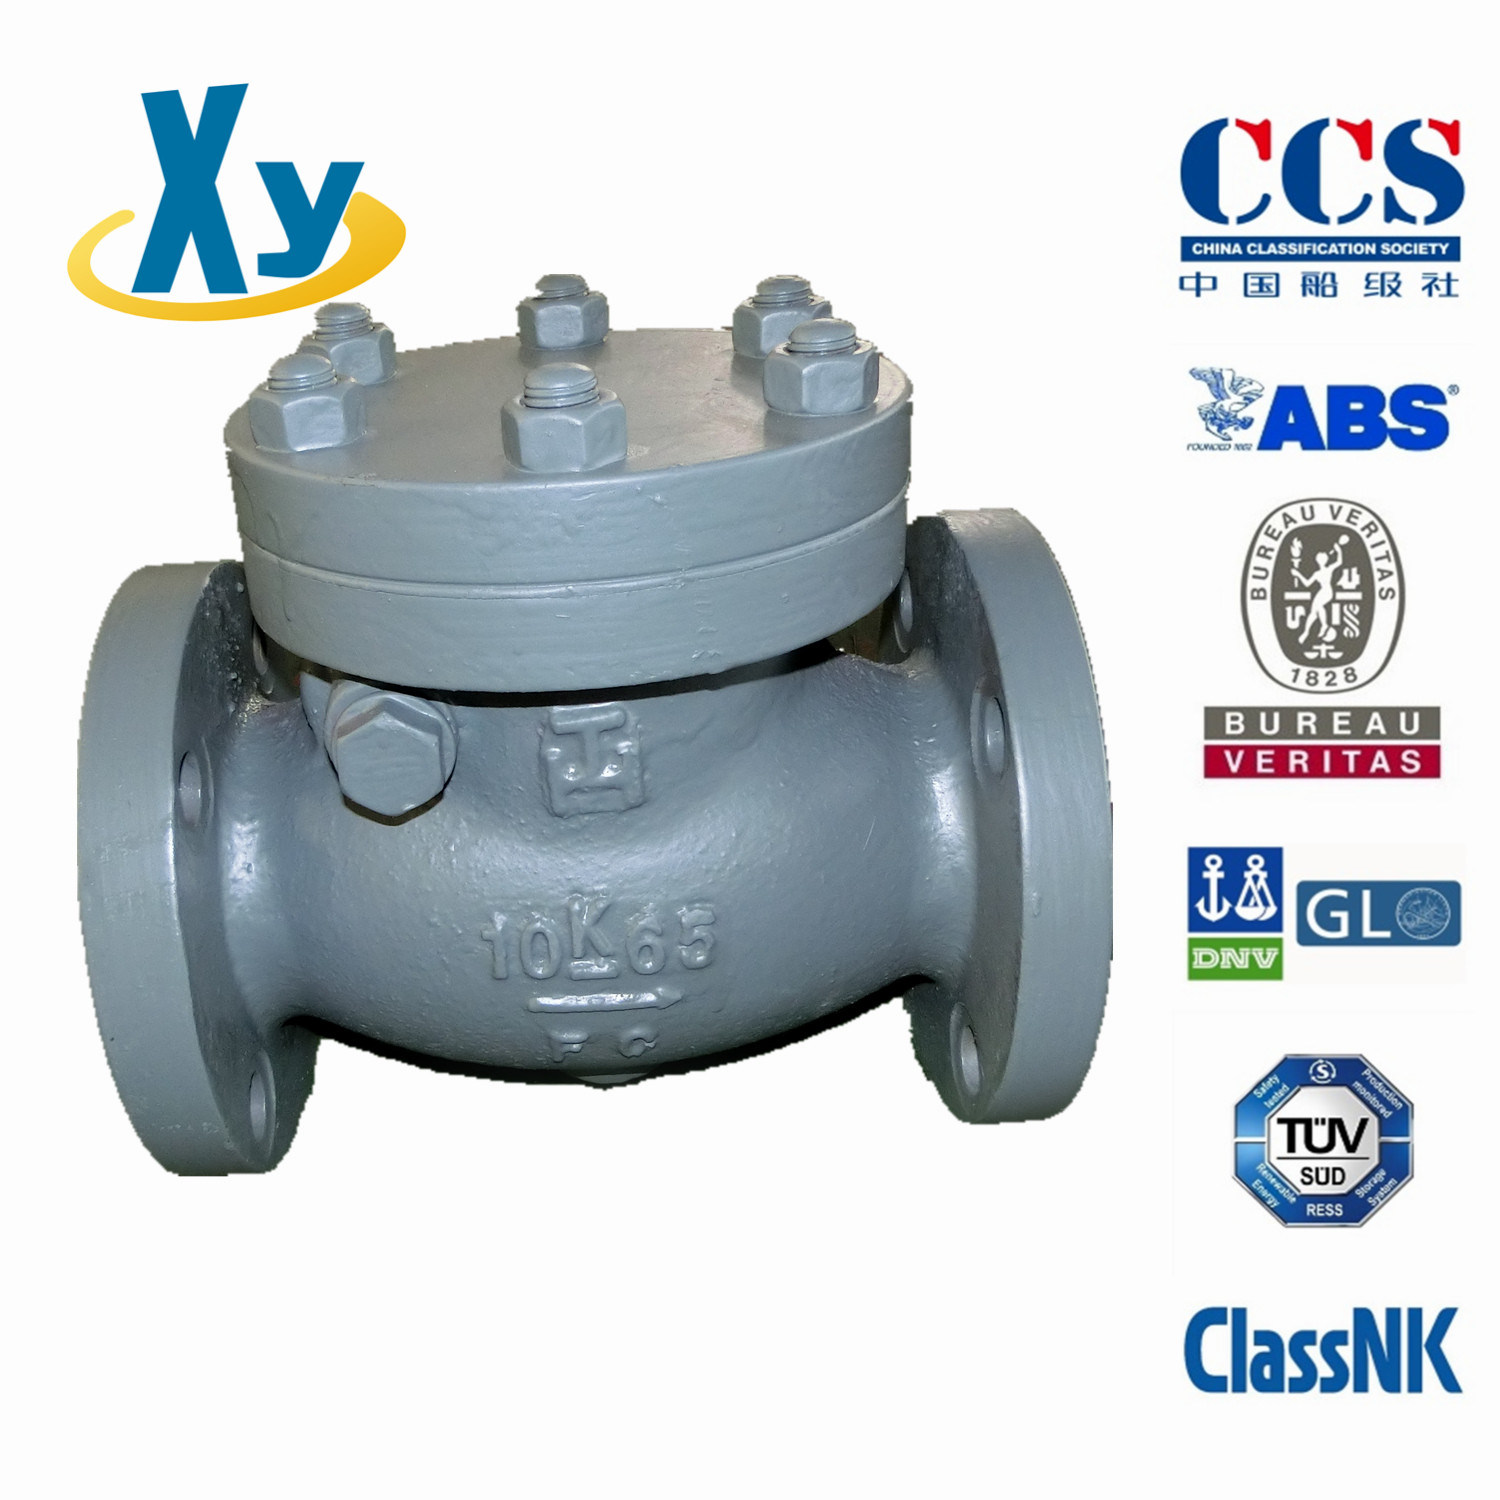 Cast Iron Swing Check Valve JIS F7372 5k F7373 10k